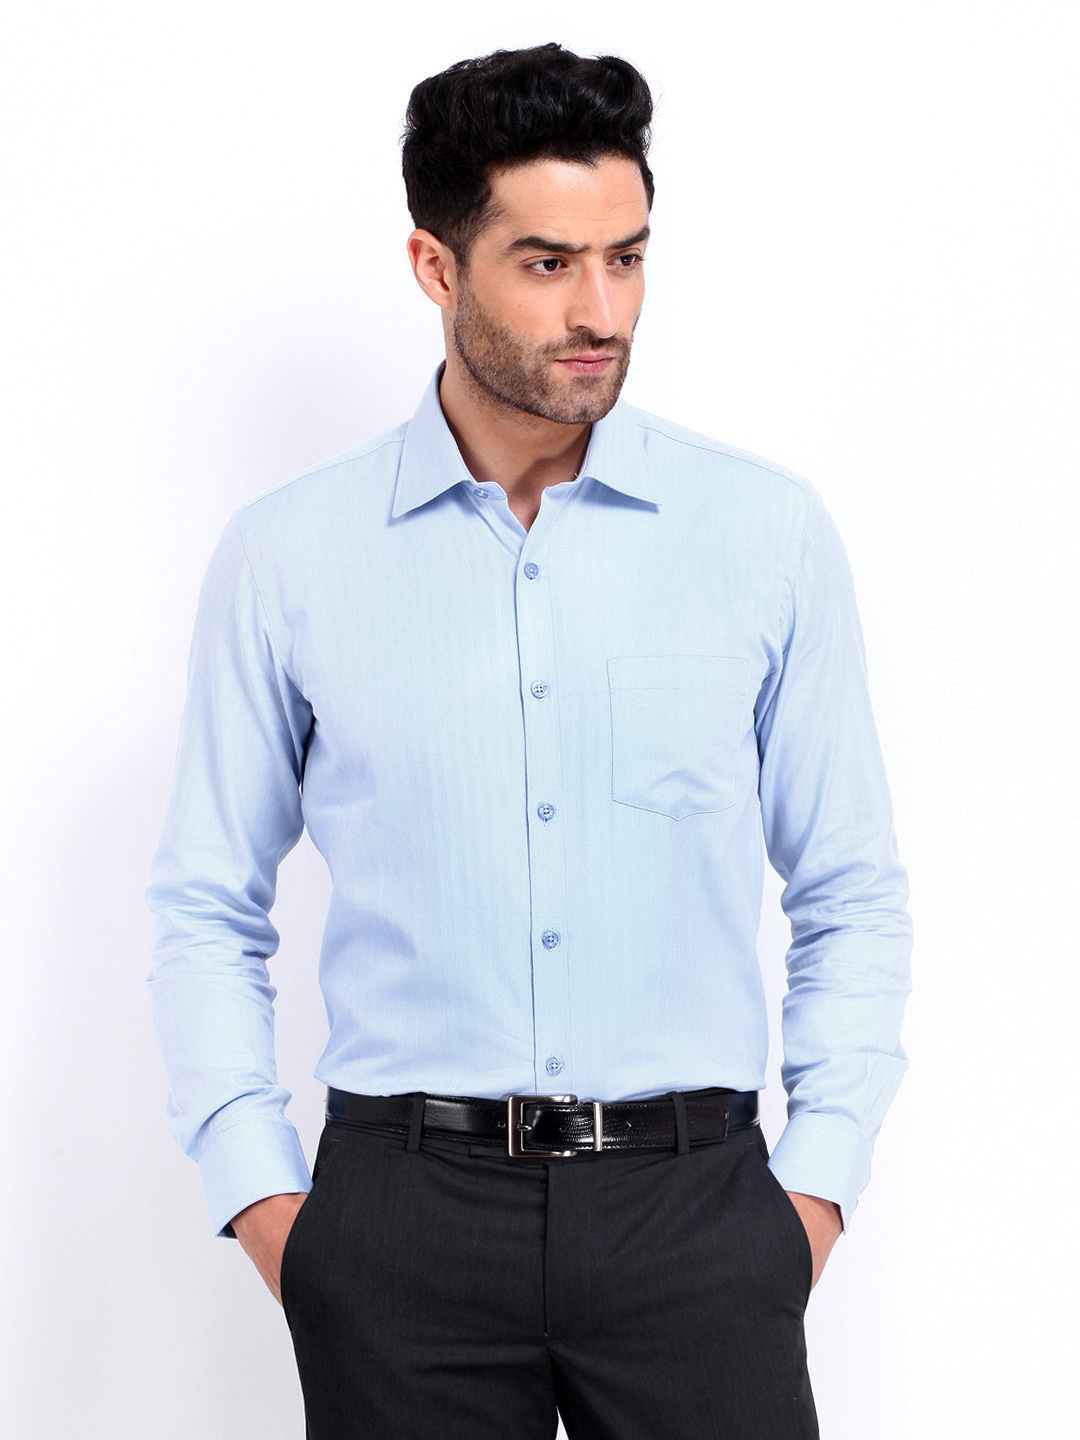 Formal shirts and pants combination for men